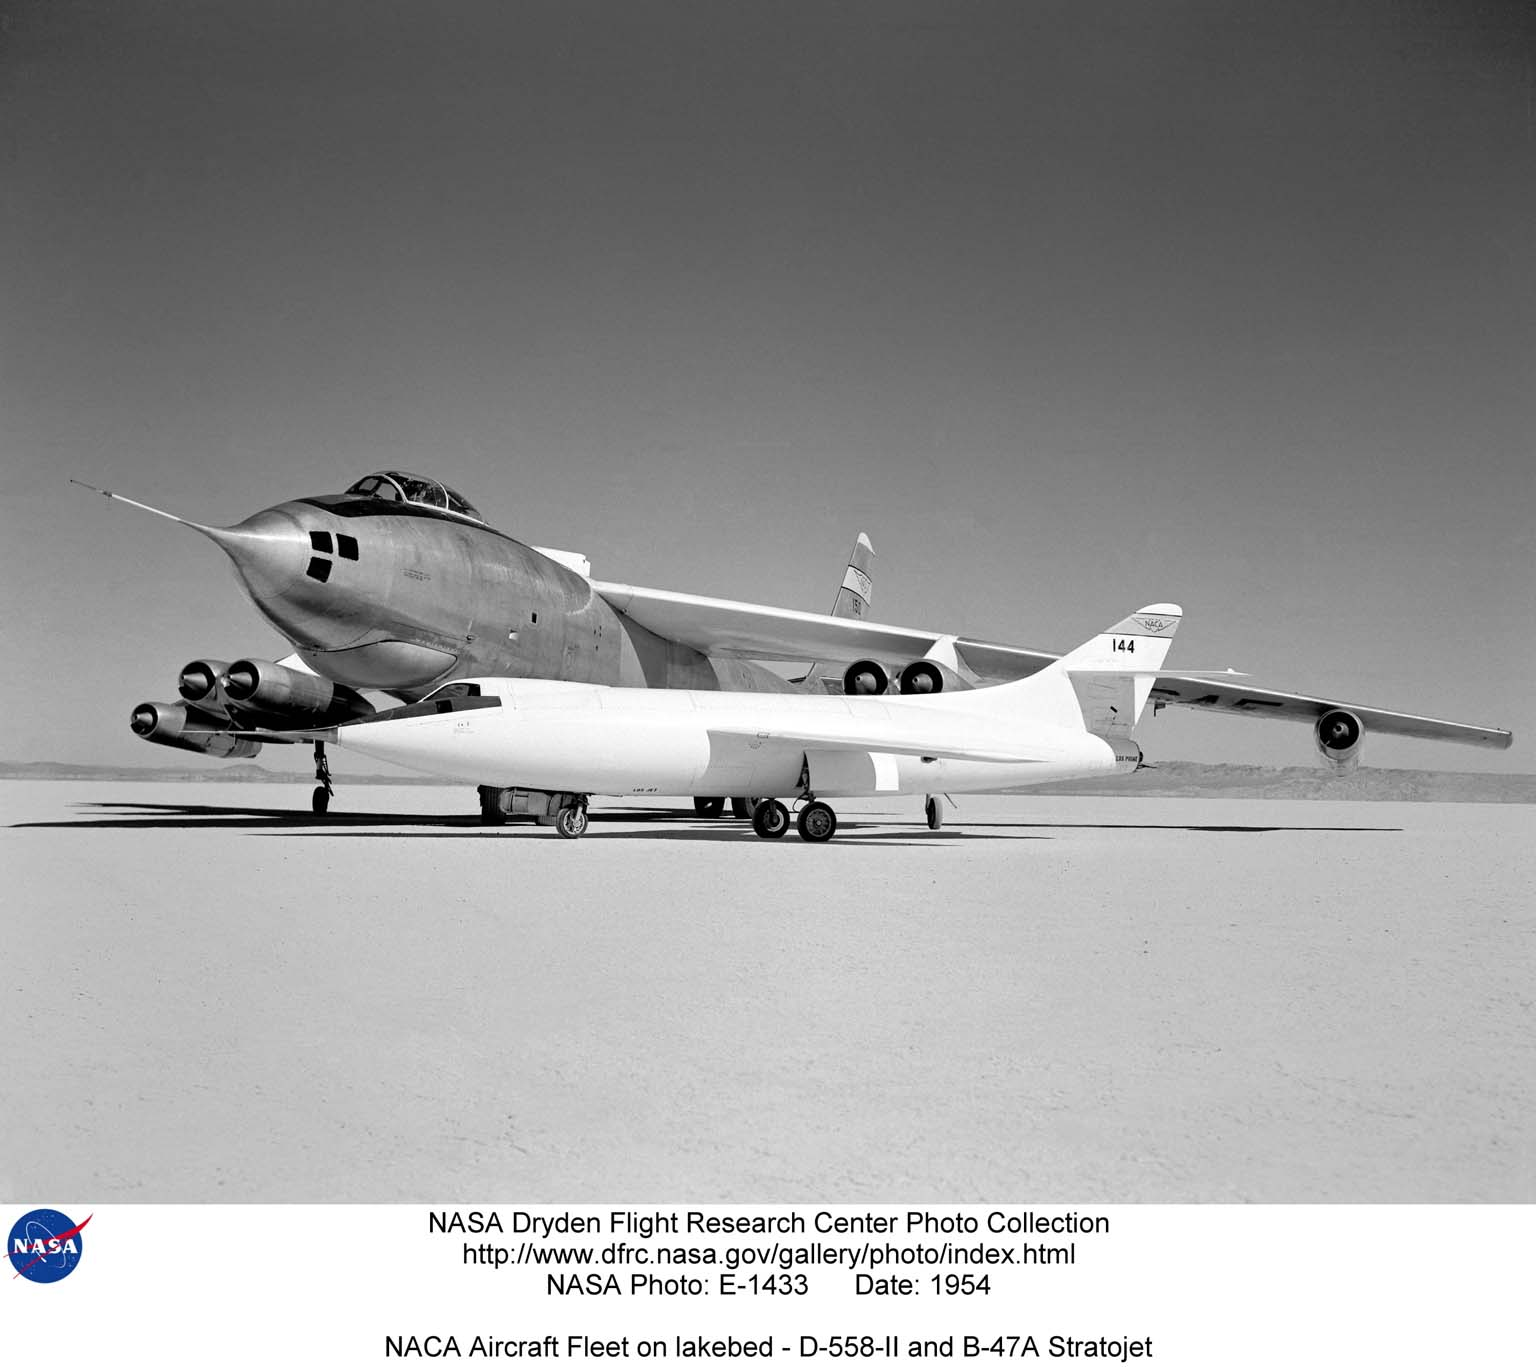 In 1954 this photo of two swept wing airplanes was taken on the ramp of NACA High-Speed Flight Research Station. The Douglas D-558-ll is a research aircraft while the Boeing B-47A Stratojet is a production bomber and very different in size. Both contributed to the studies for swept back wing research.